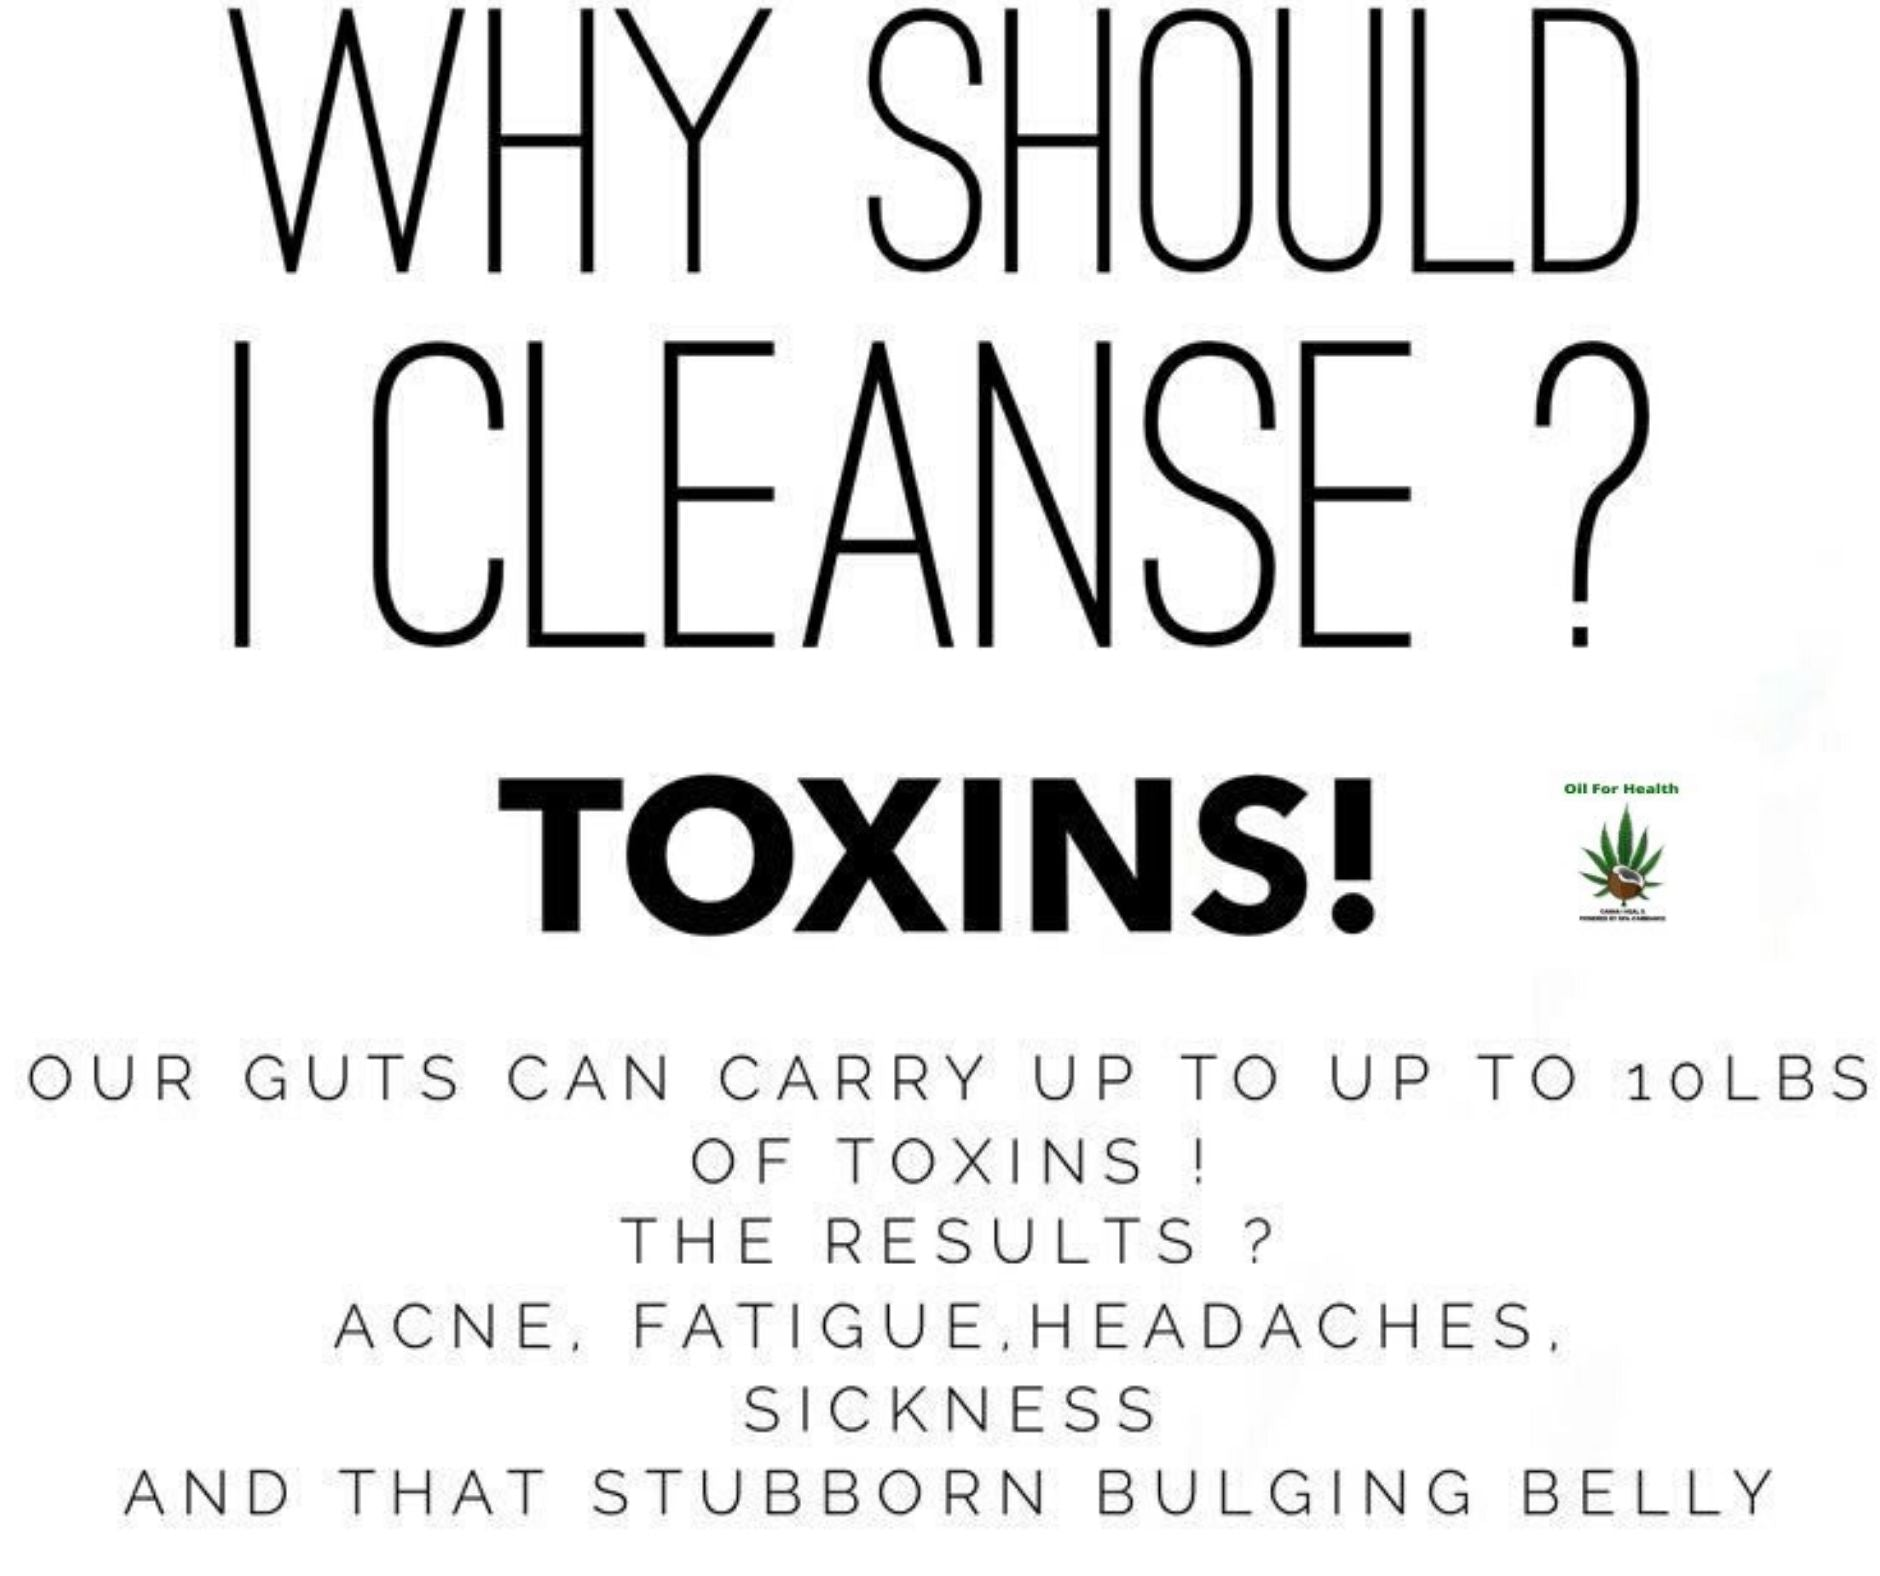 Toxins and gut health